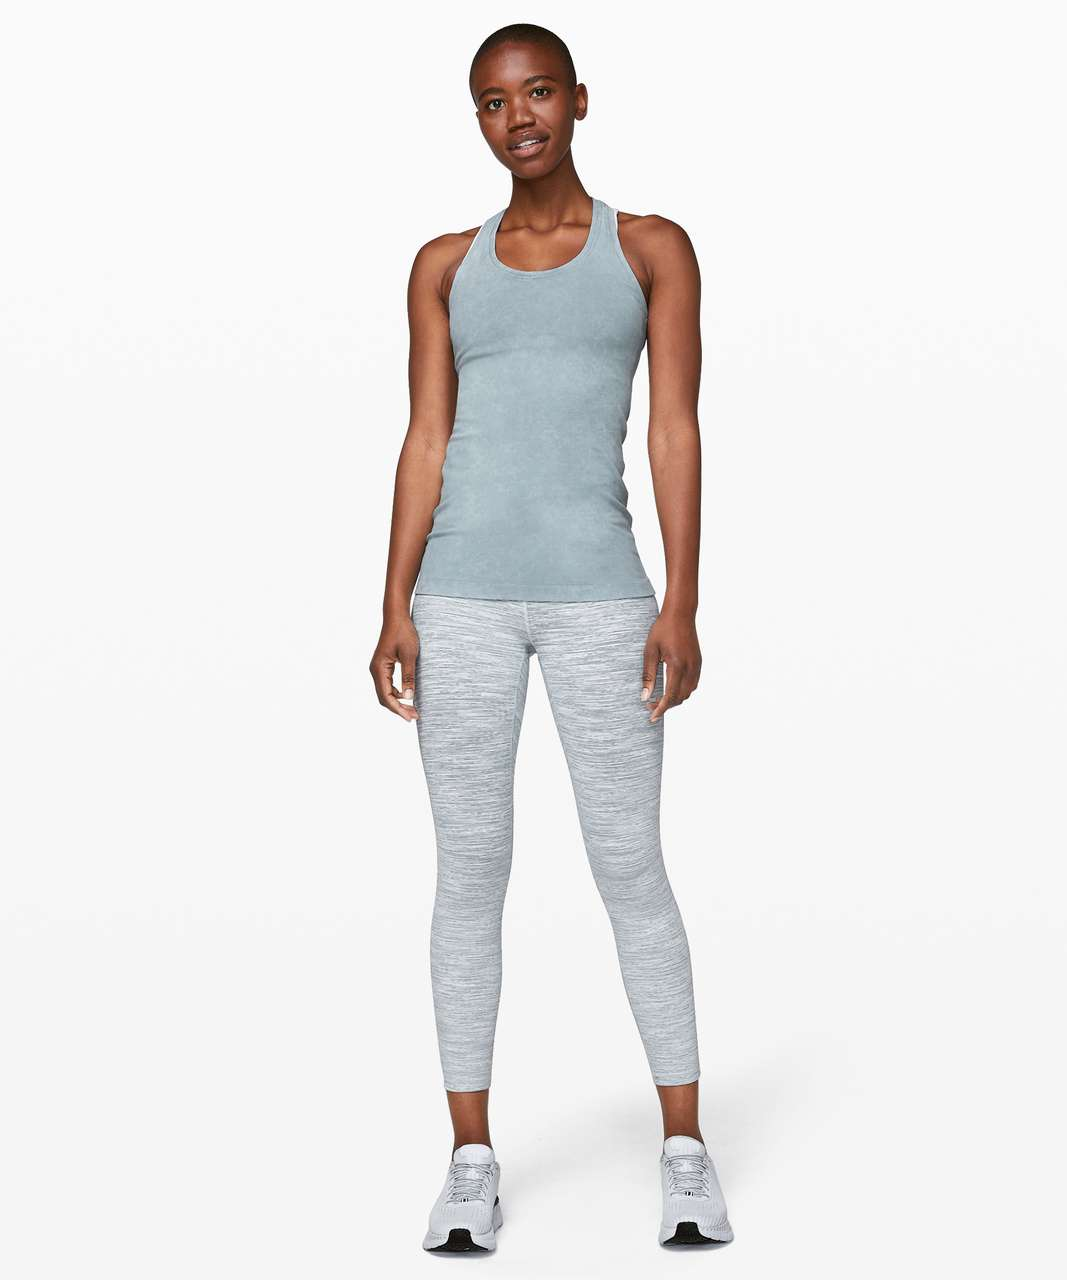 Lululemon Cool Racerback II *Dye - Washed Chambray